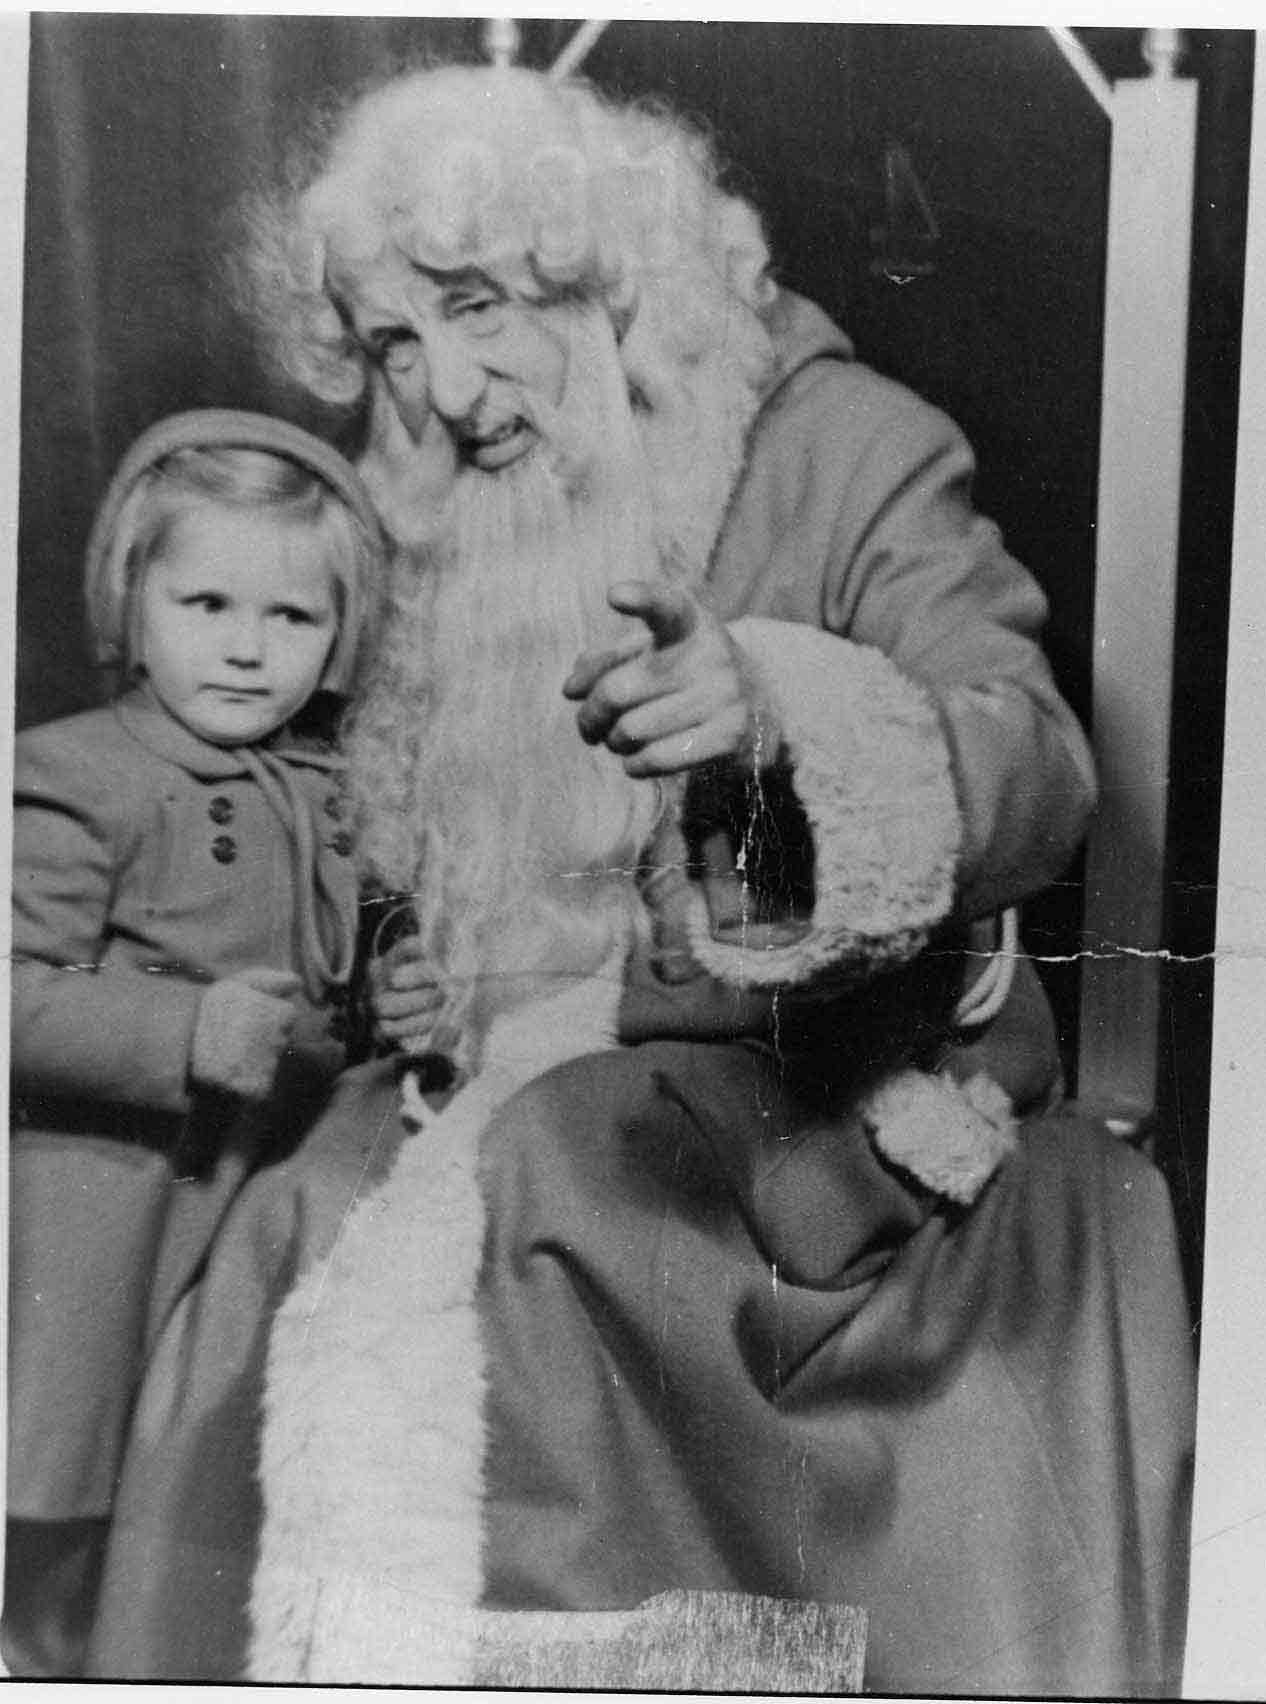 Jenners Father Christmas With Young Child 1950